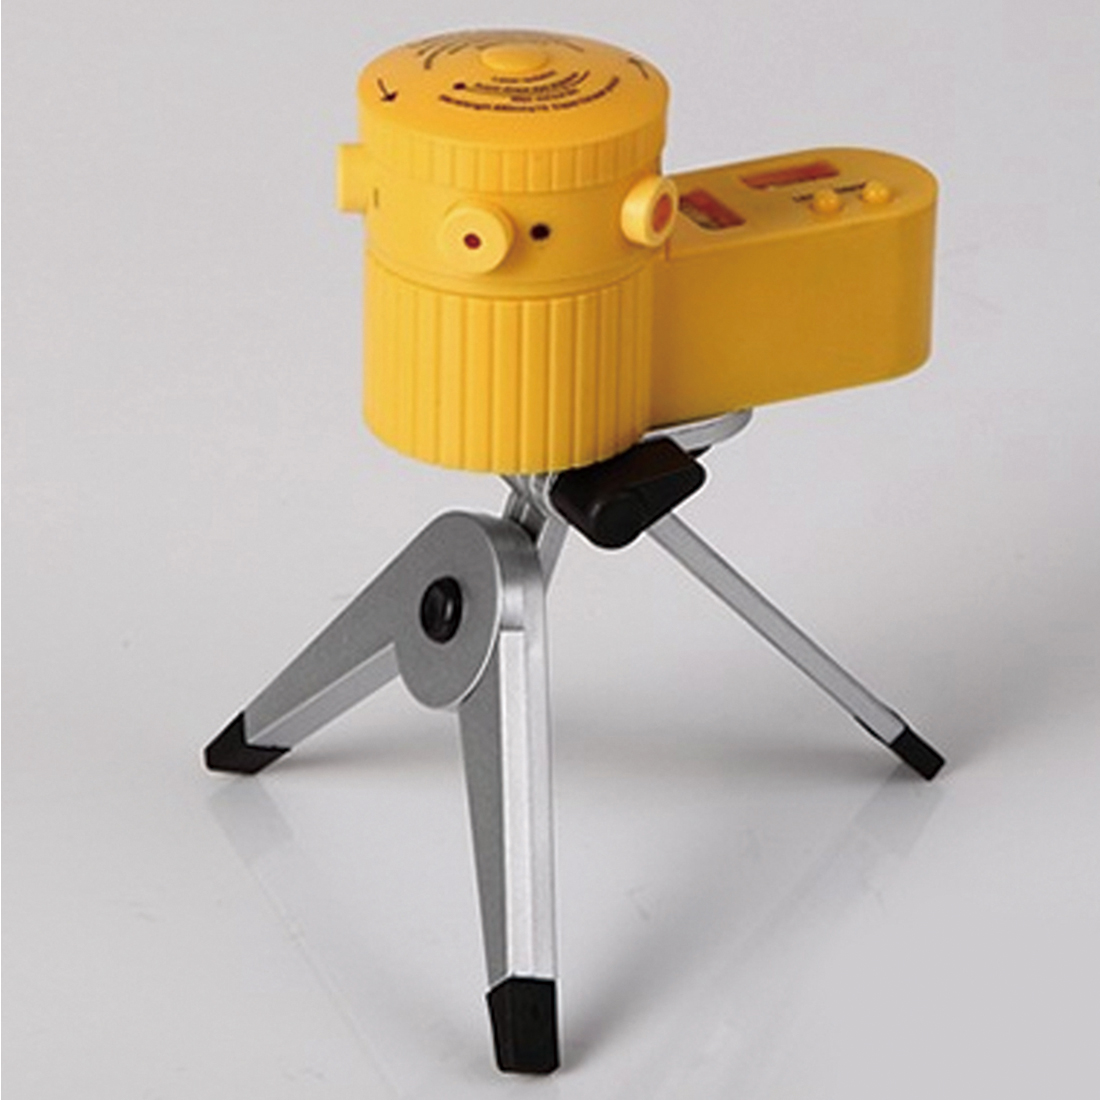 Multifunction Cross Laser Level Leveler Vertical Horizontal Line Tool With Tripod Yellow